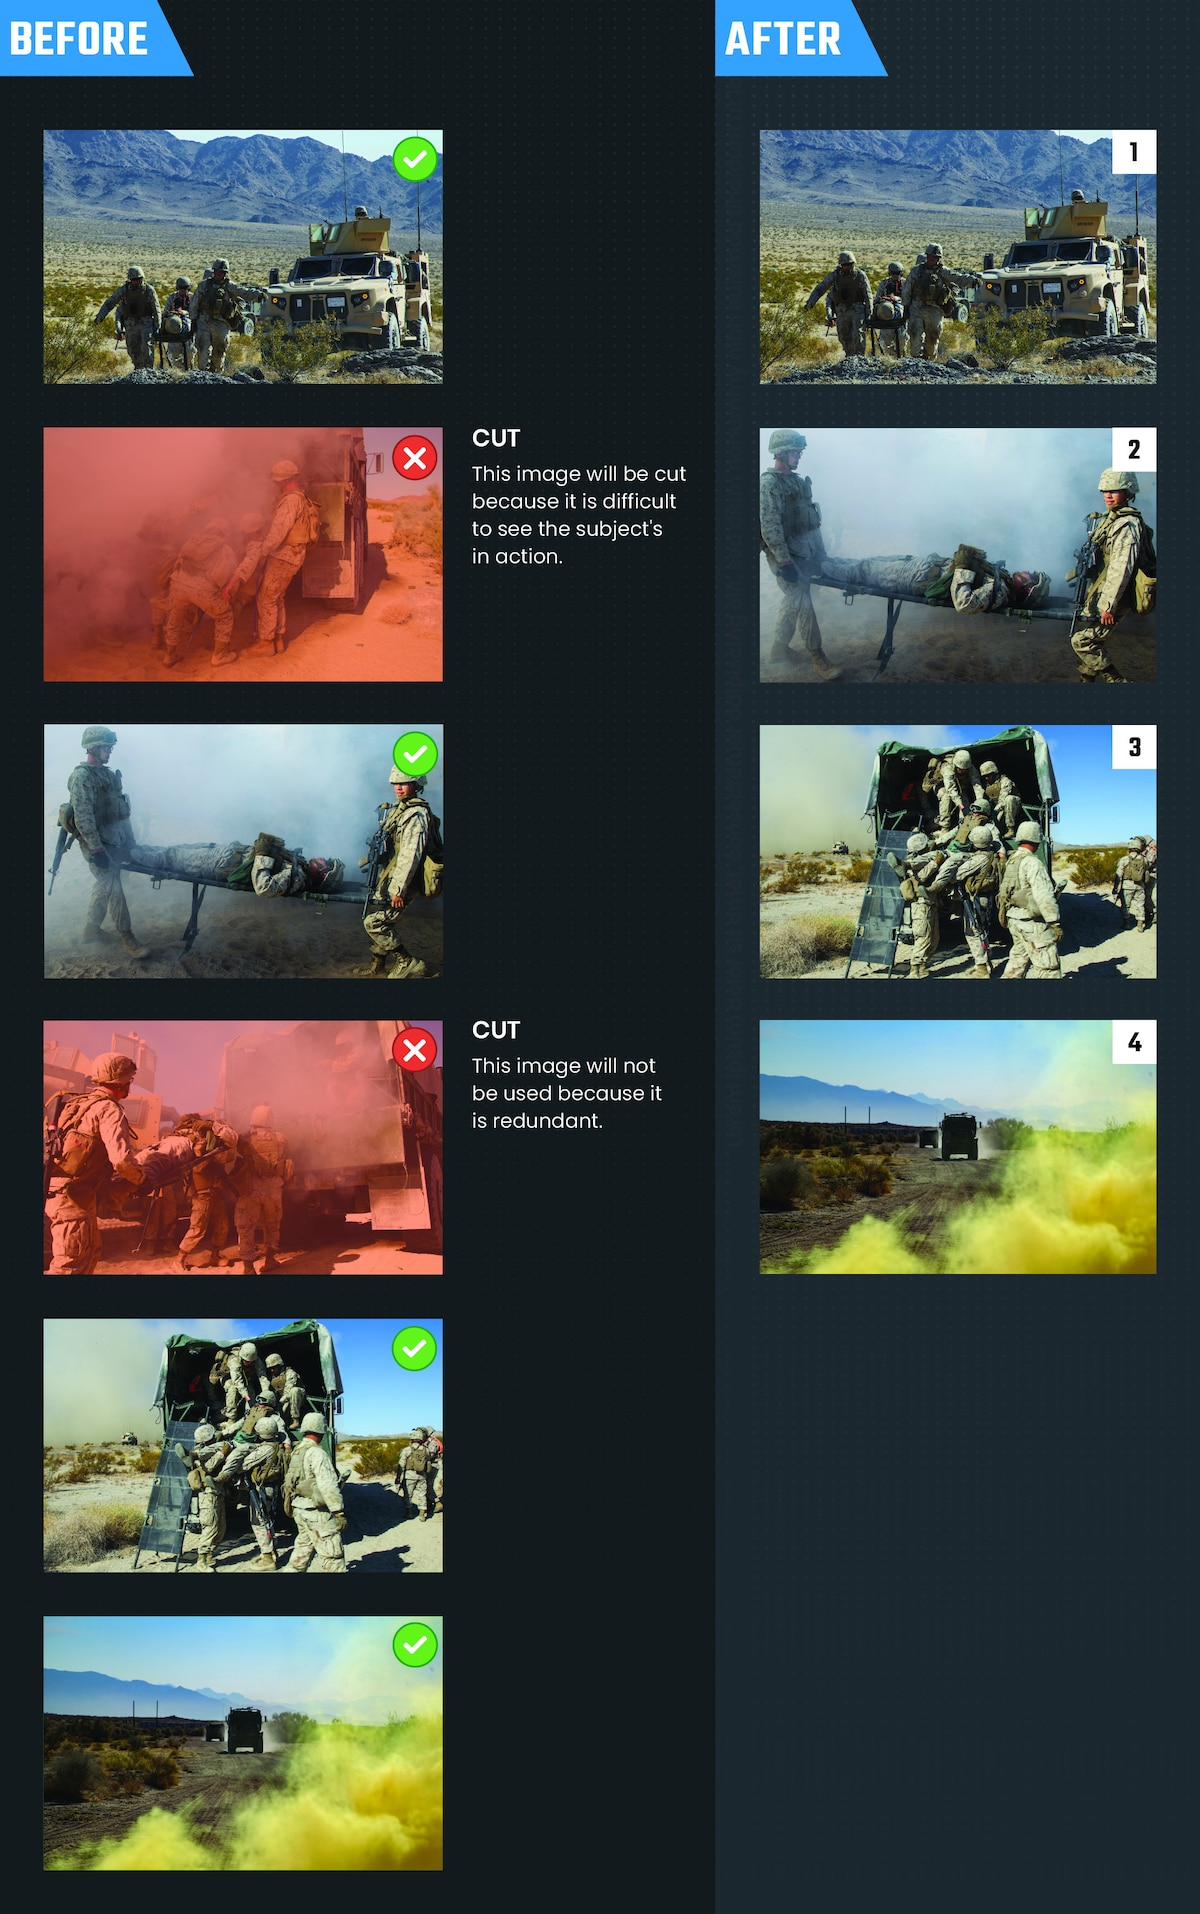 The graphic first shows the original sequence of six images, then shows the resulting sequence of four images after removing two images.